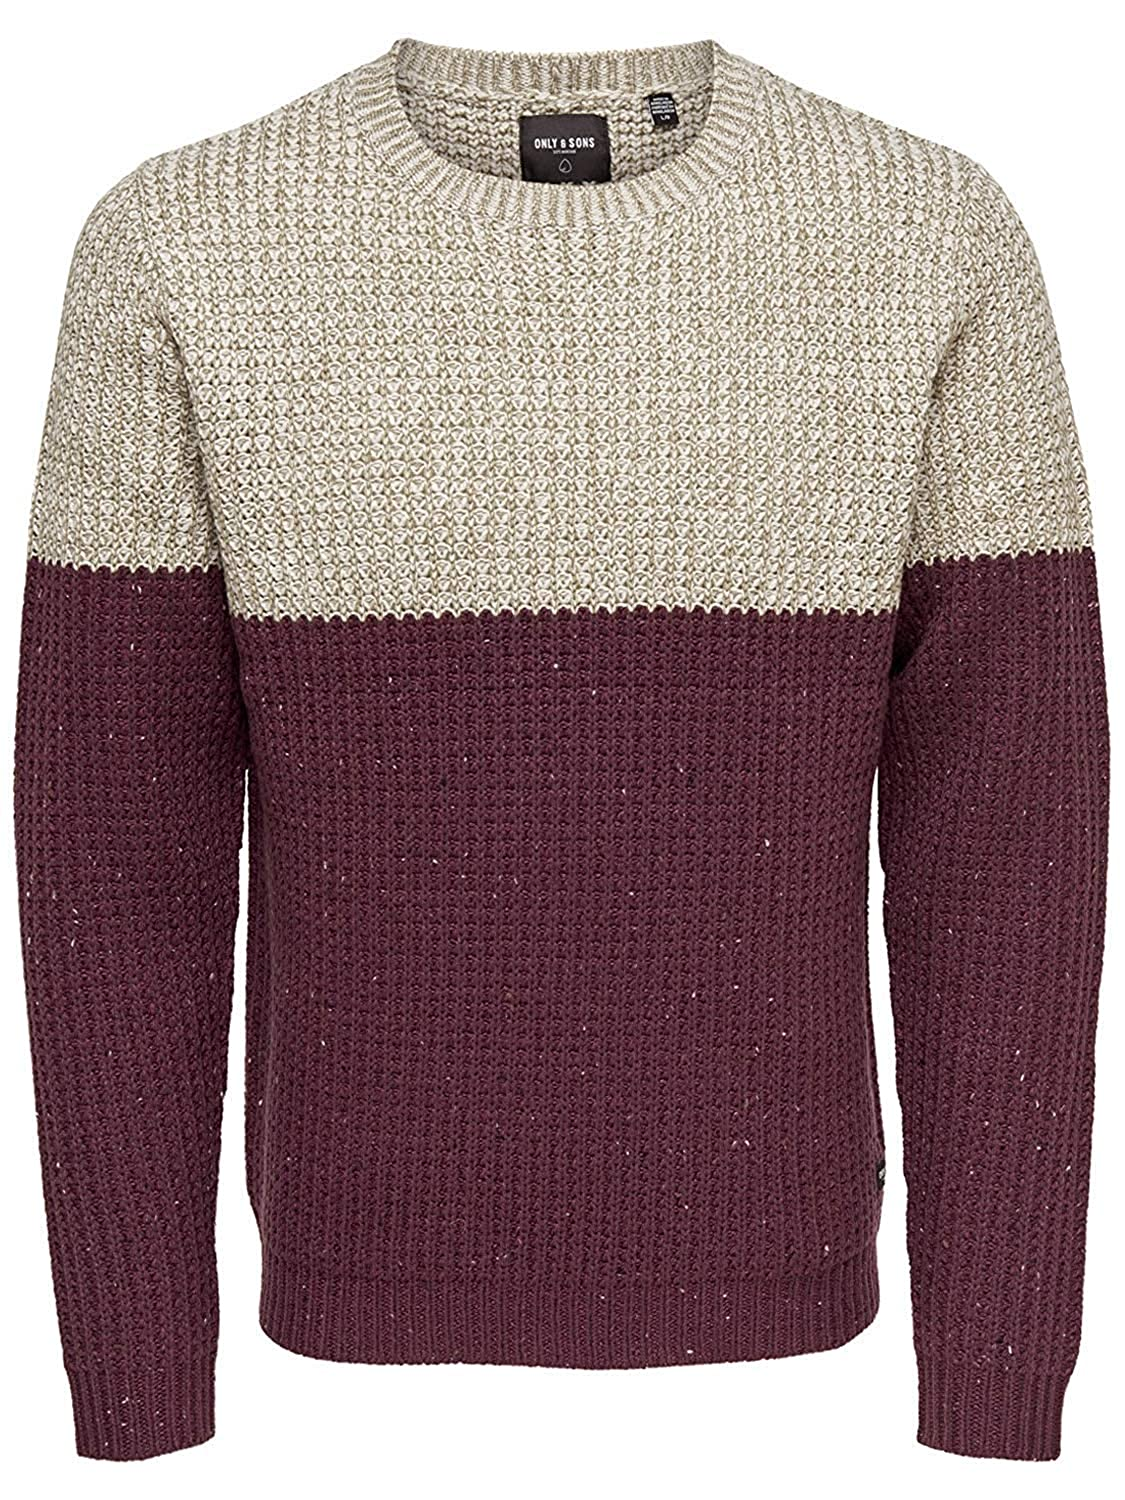 Only & Sons Men's Blocked Crew Neck Knitted Jumper